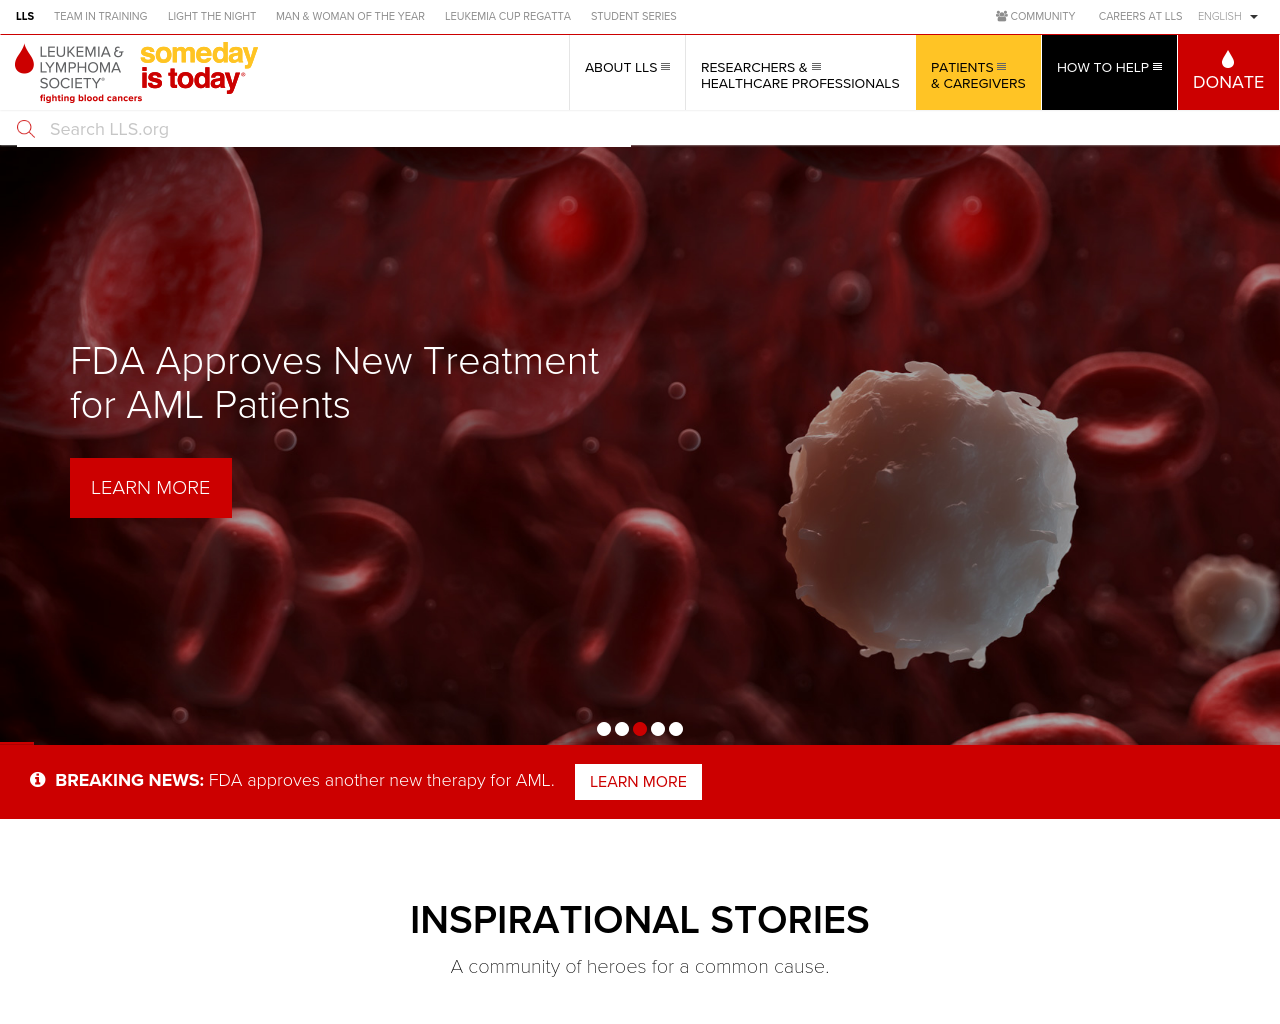 LEUKEMIA-&-LYMPHOMA-SOCIETY-Advertising-Reviews-Pricing